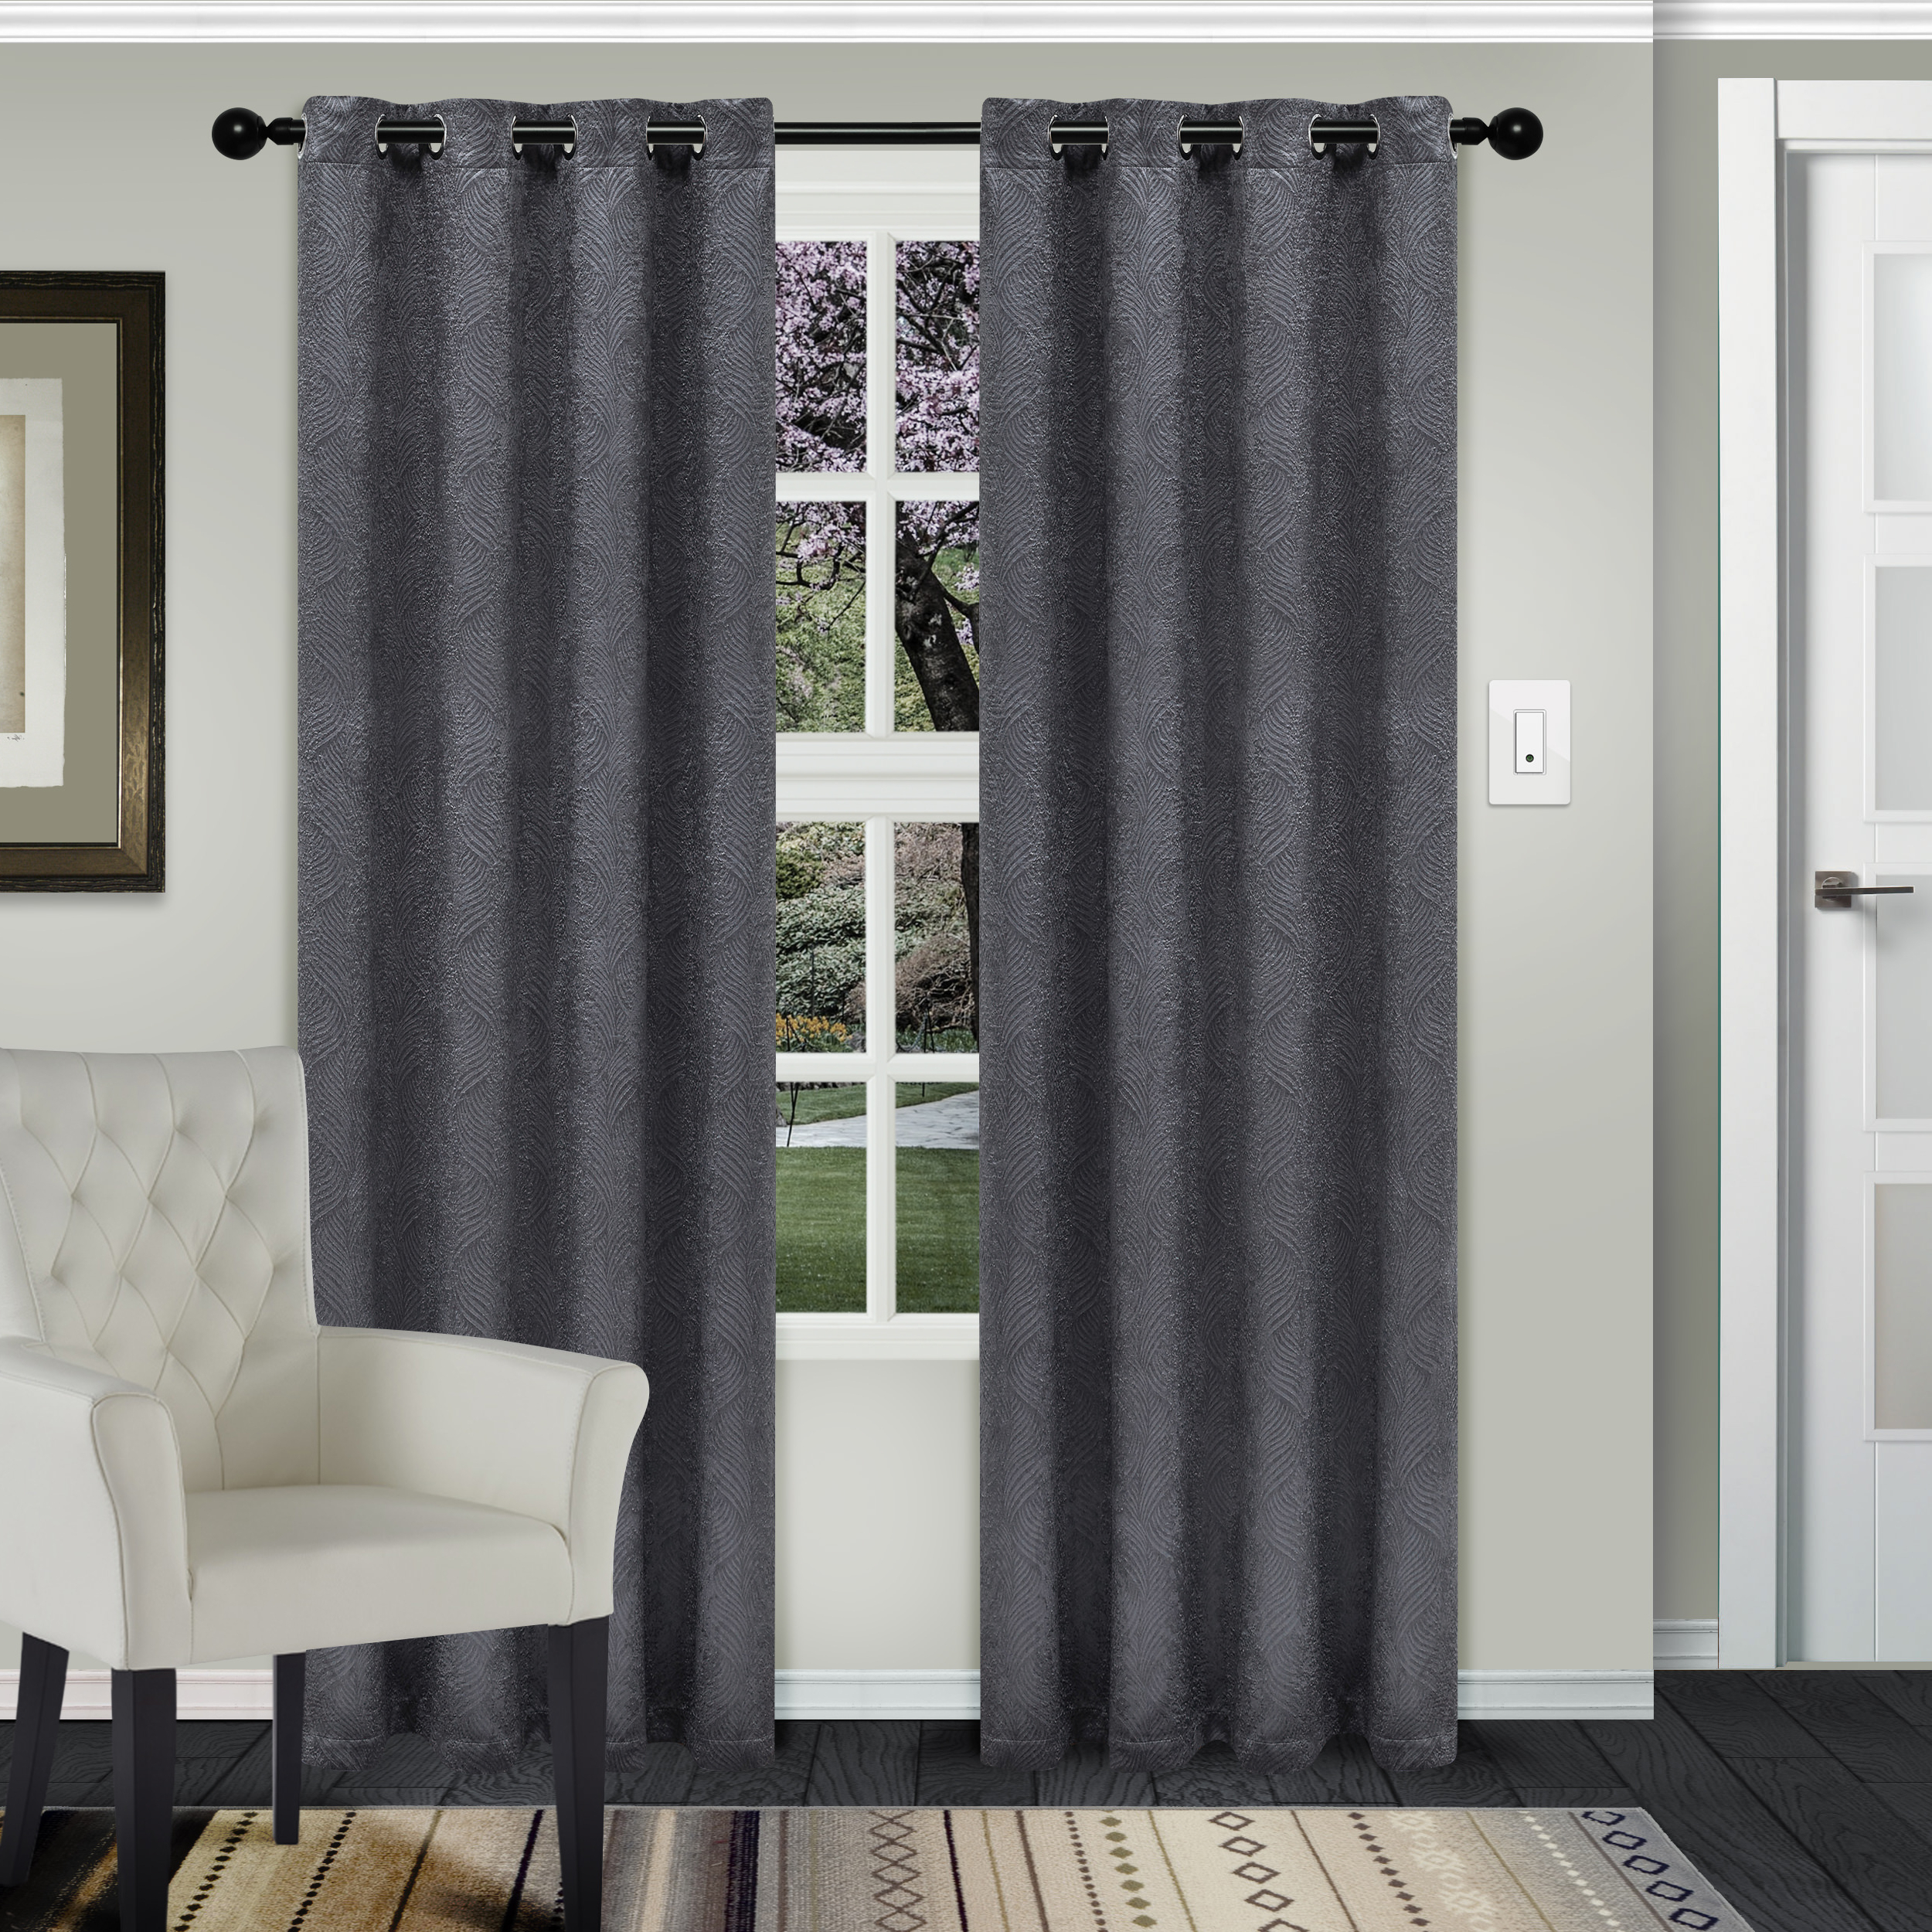 Superior Waverly Textured Blackout Curtain Set Of 2, Insulated Panels With Grommet Top With Regard To Famous Solid Insulated Thermal Blackout Long Length Curtain Panel Pairs (View 10 of 20)